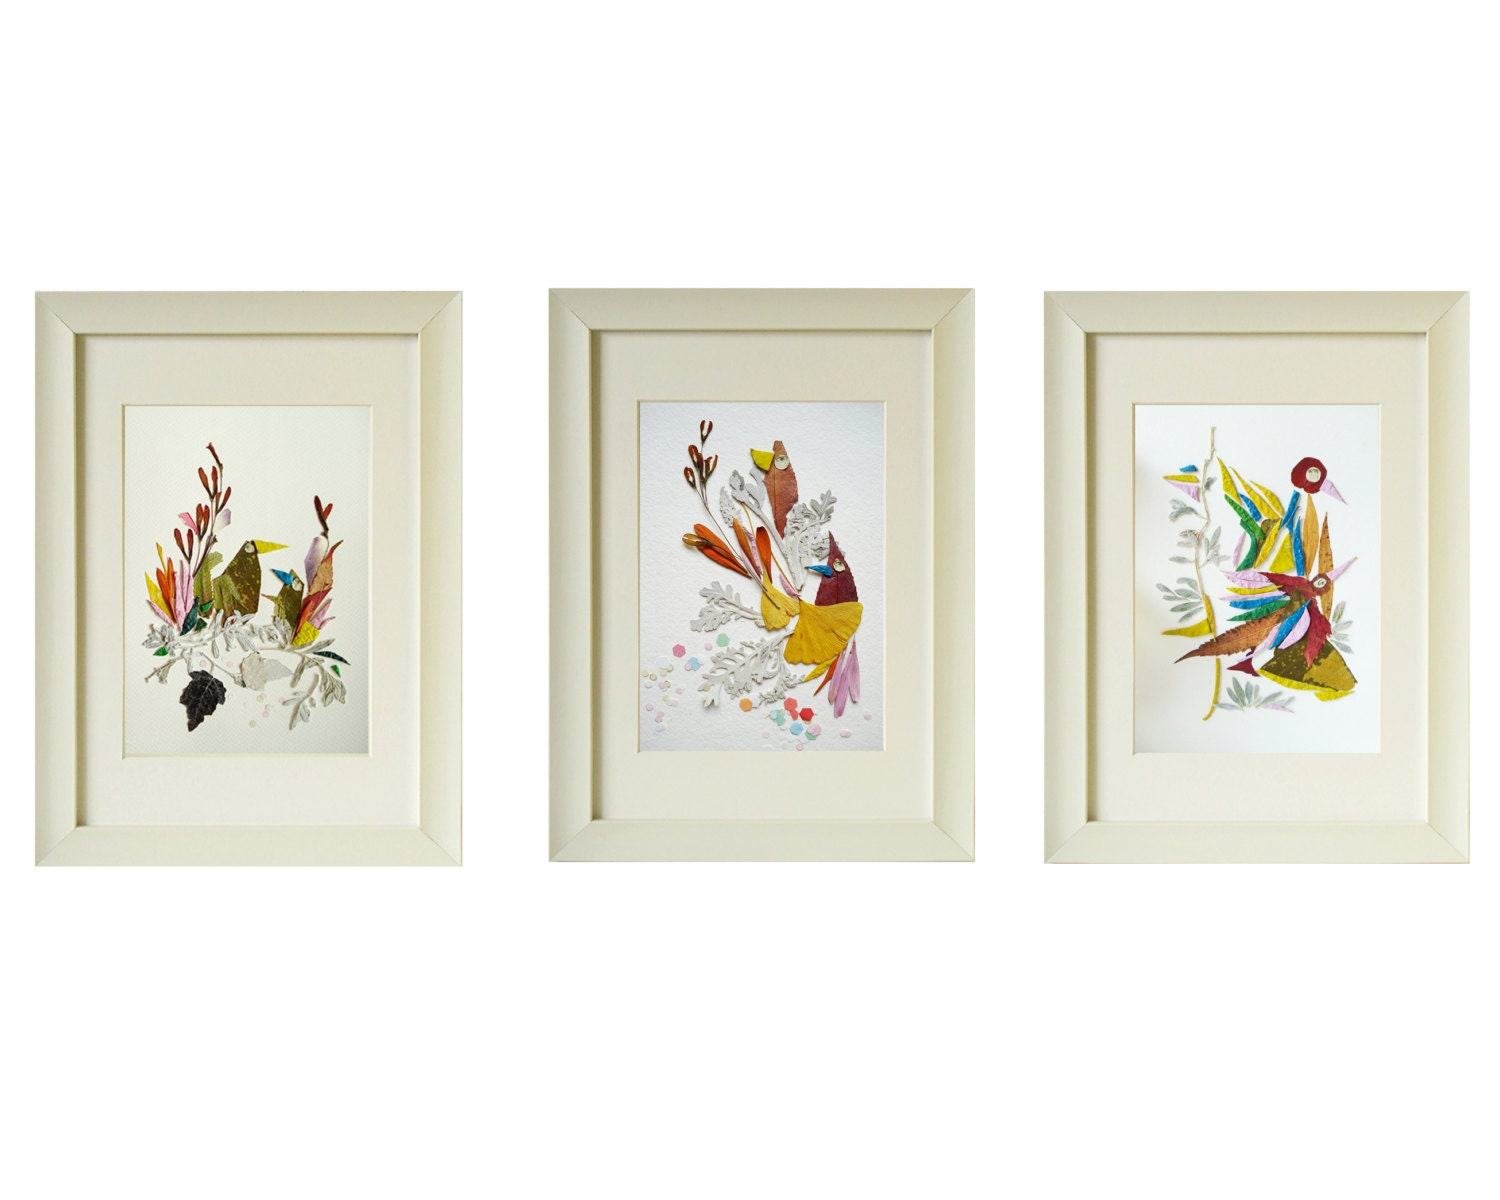 Wall Decor Set Of 3 : Triptych wall art set of prints birds pressed flower